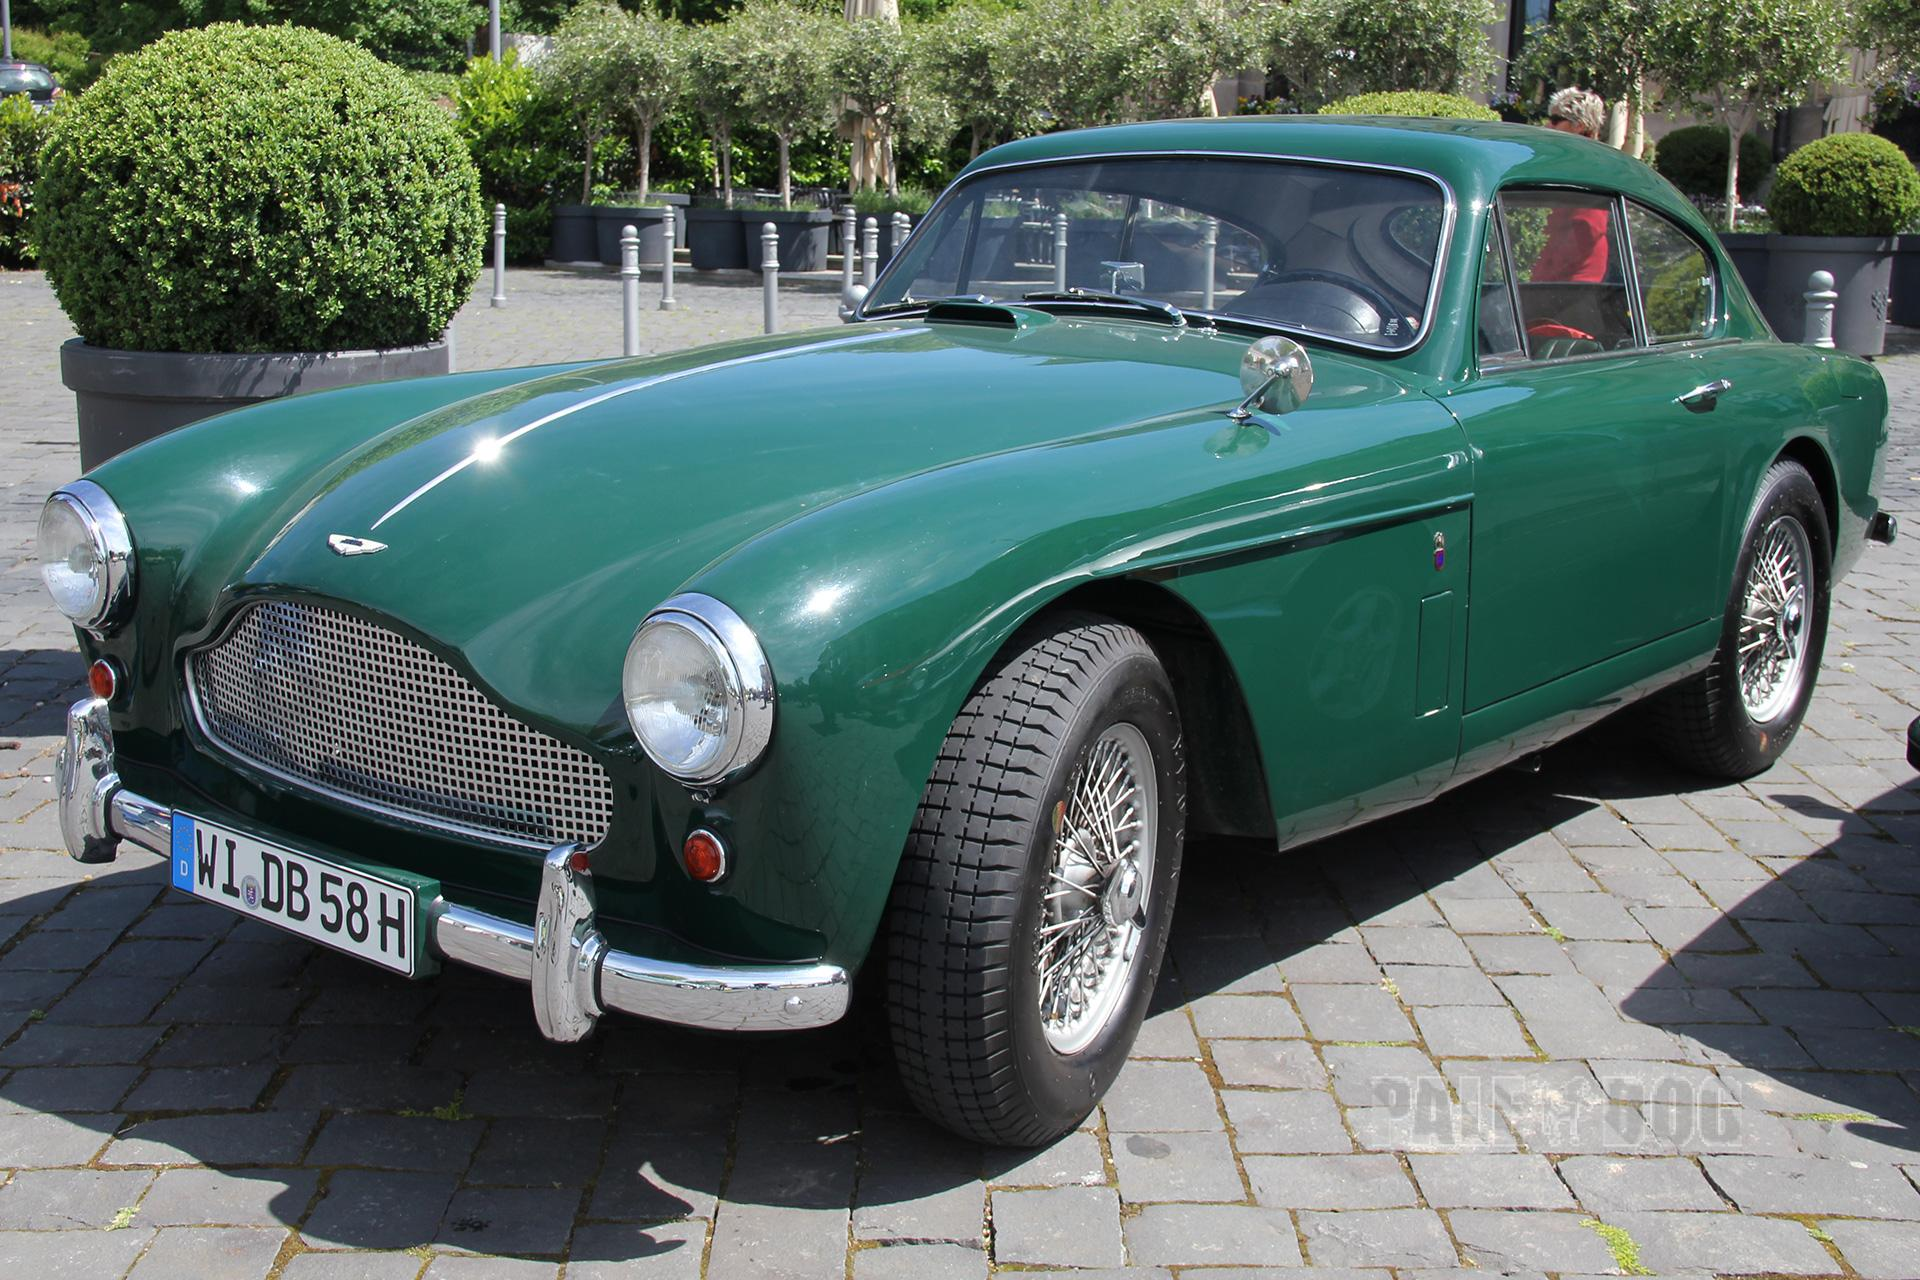 1958 Aston Martin Db 2 4 Mk Iii Coupé Front View Post War Paledog Photo Collection